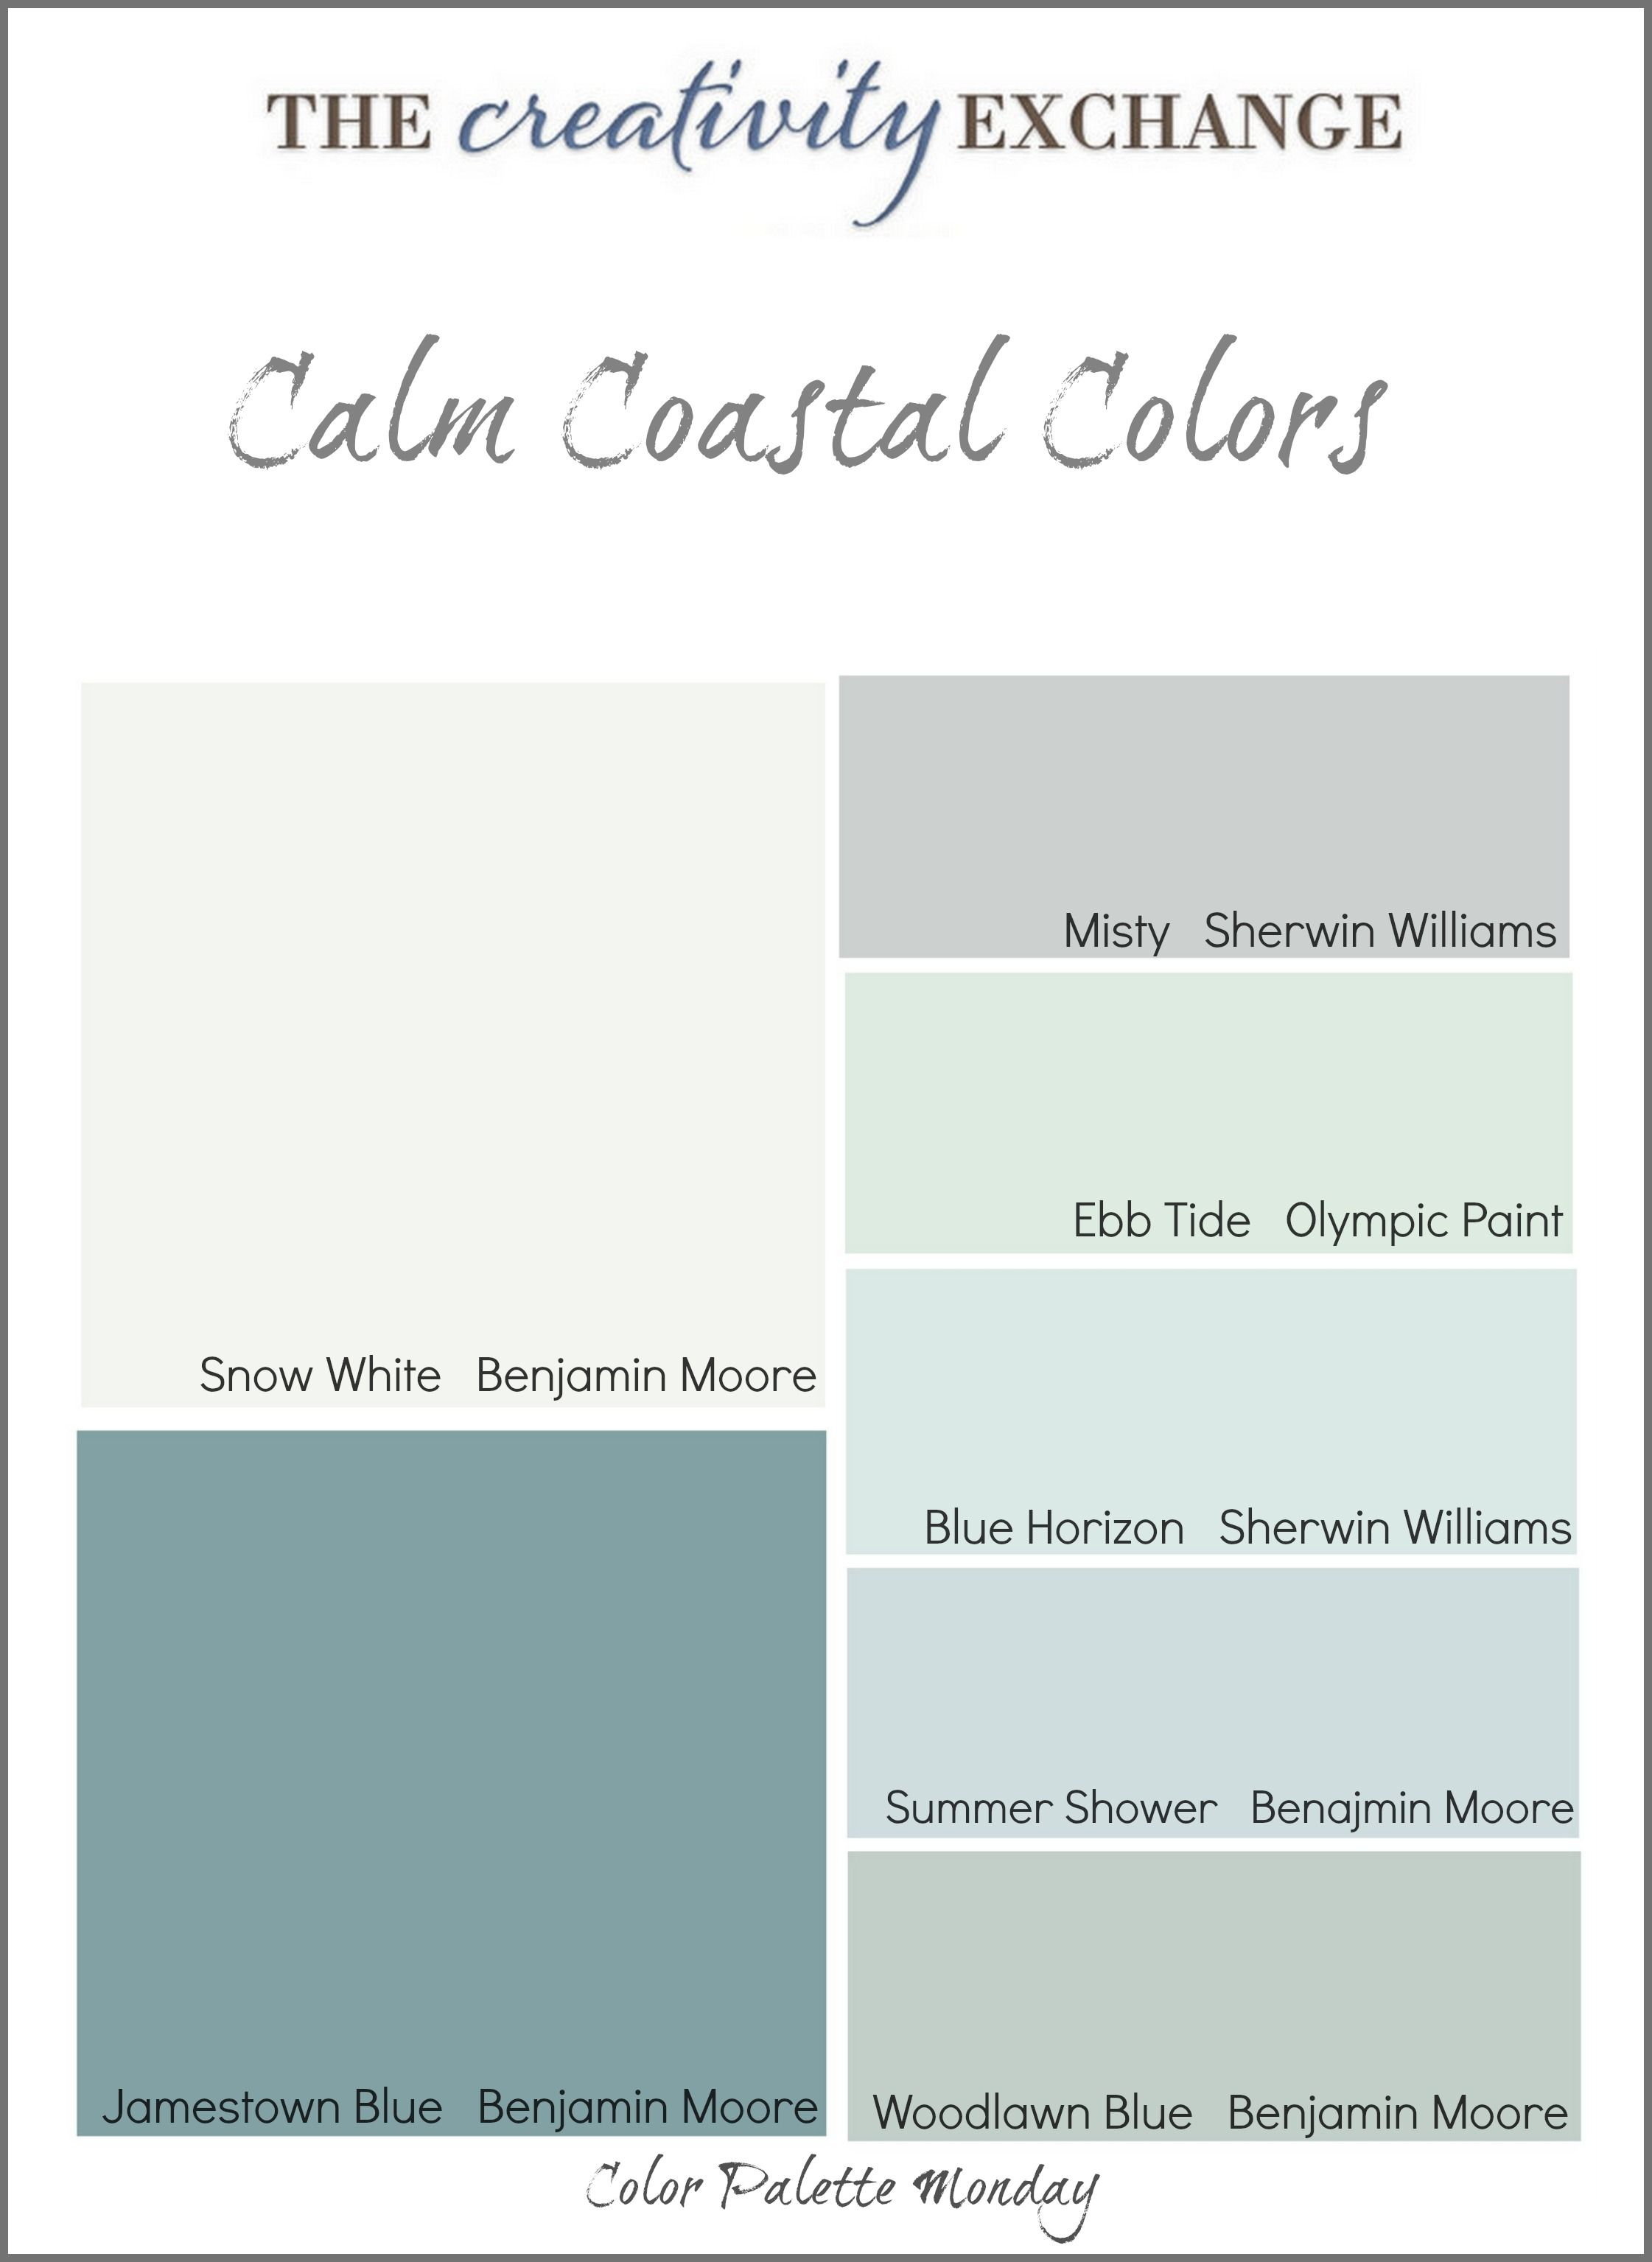 Soothing Paint Colors For The Bedroom Readers Favorite Paint Colors Color Palette Monday Favorite